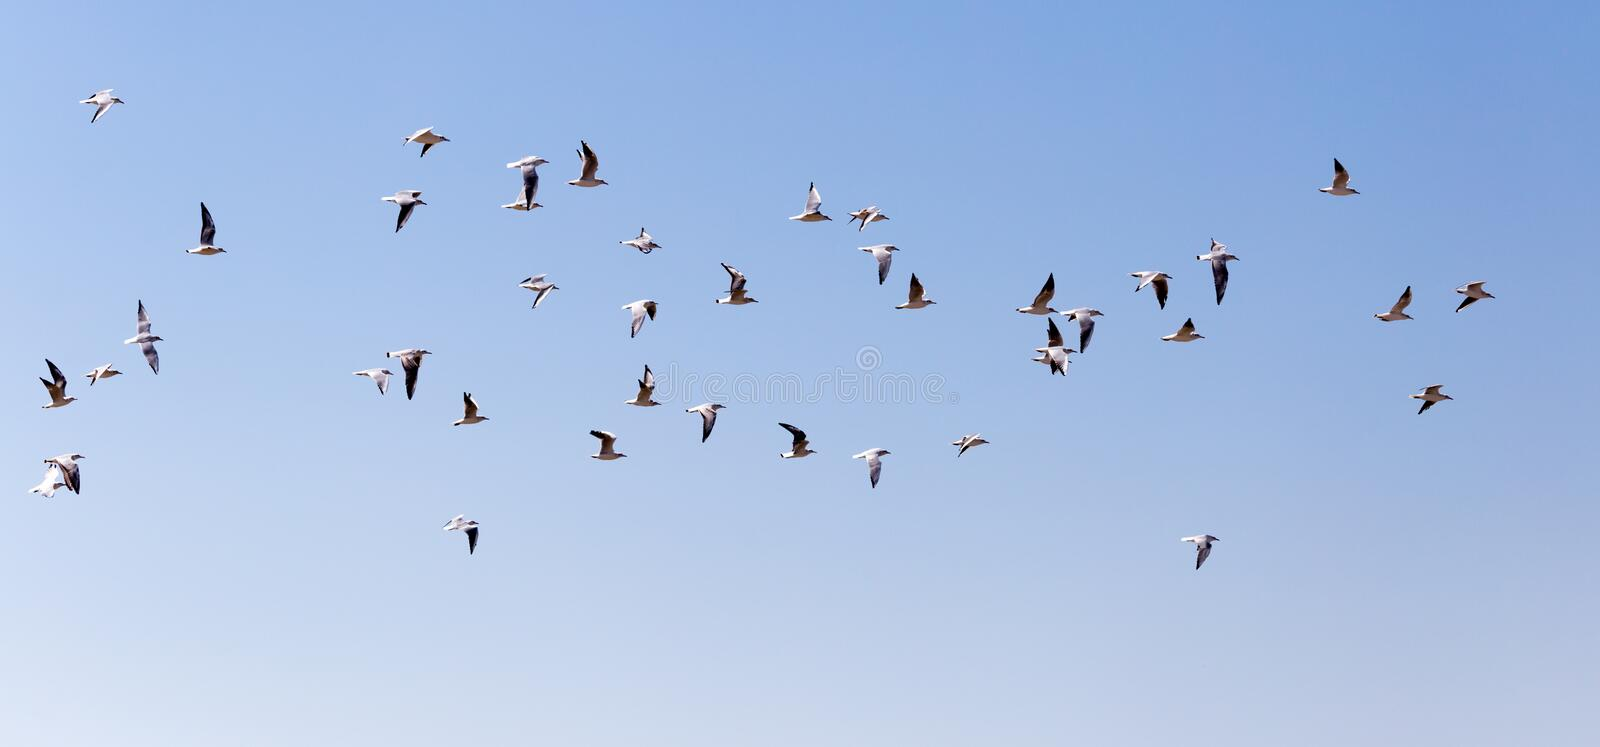 A flock of seagulls in flight stock photography